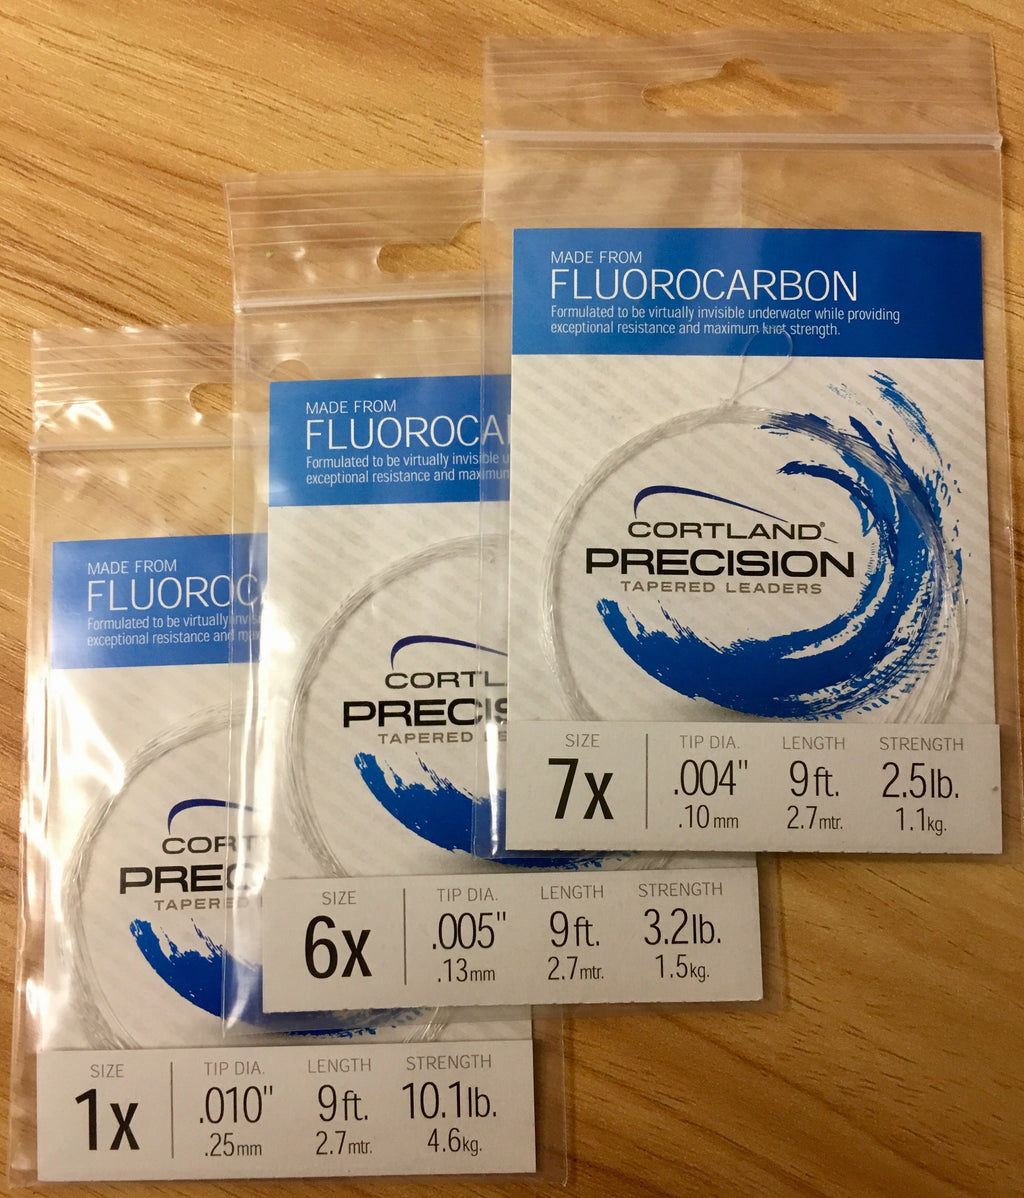 Cortland Precision Fluorocarbon Tapered Leaders-Cortland-Brodies Angling & Outdoors